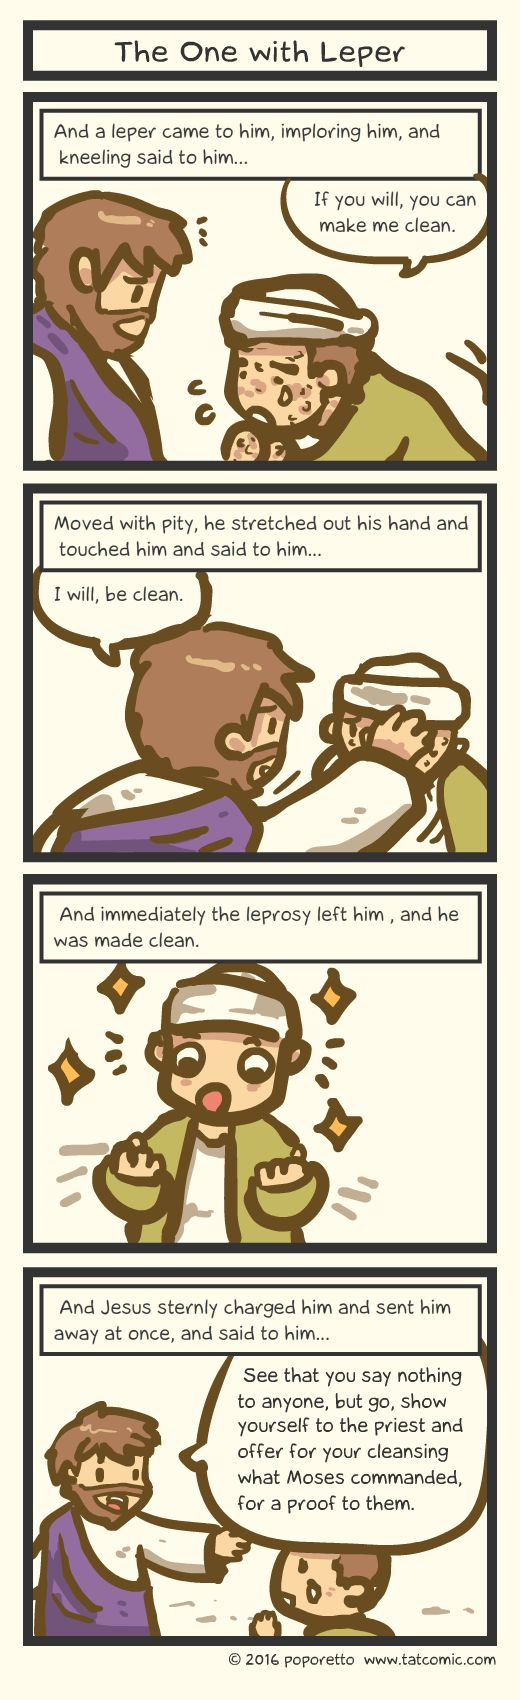 Book of mark comic gospel about how jesus healed the leper